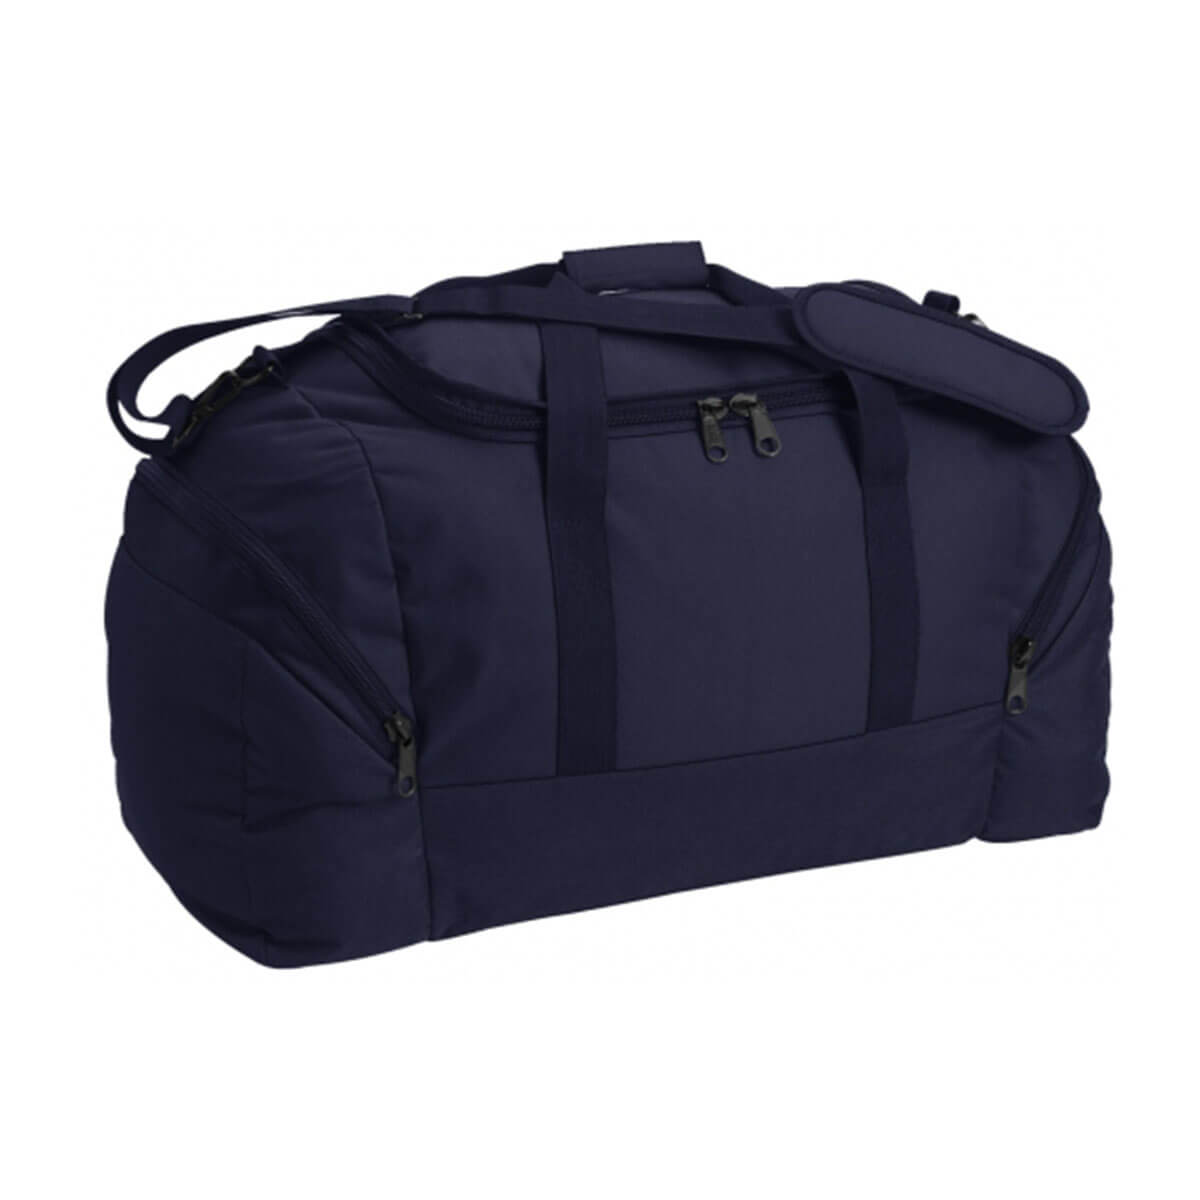 Team Sports Bag-Navy